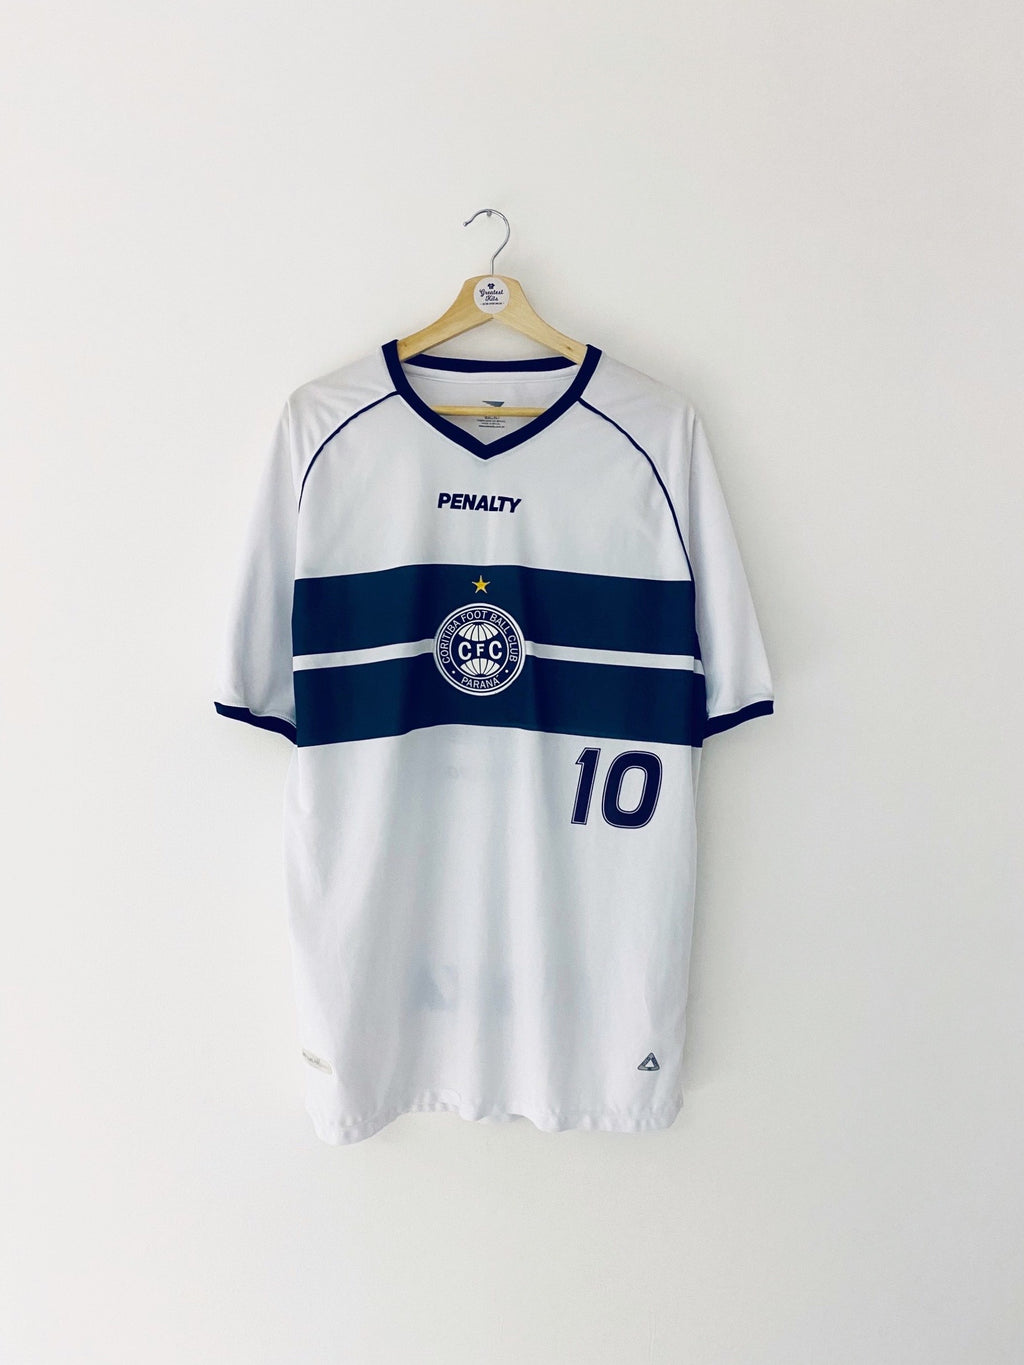 2002 Coritiba Home Shirt #10 (XL) 9/10